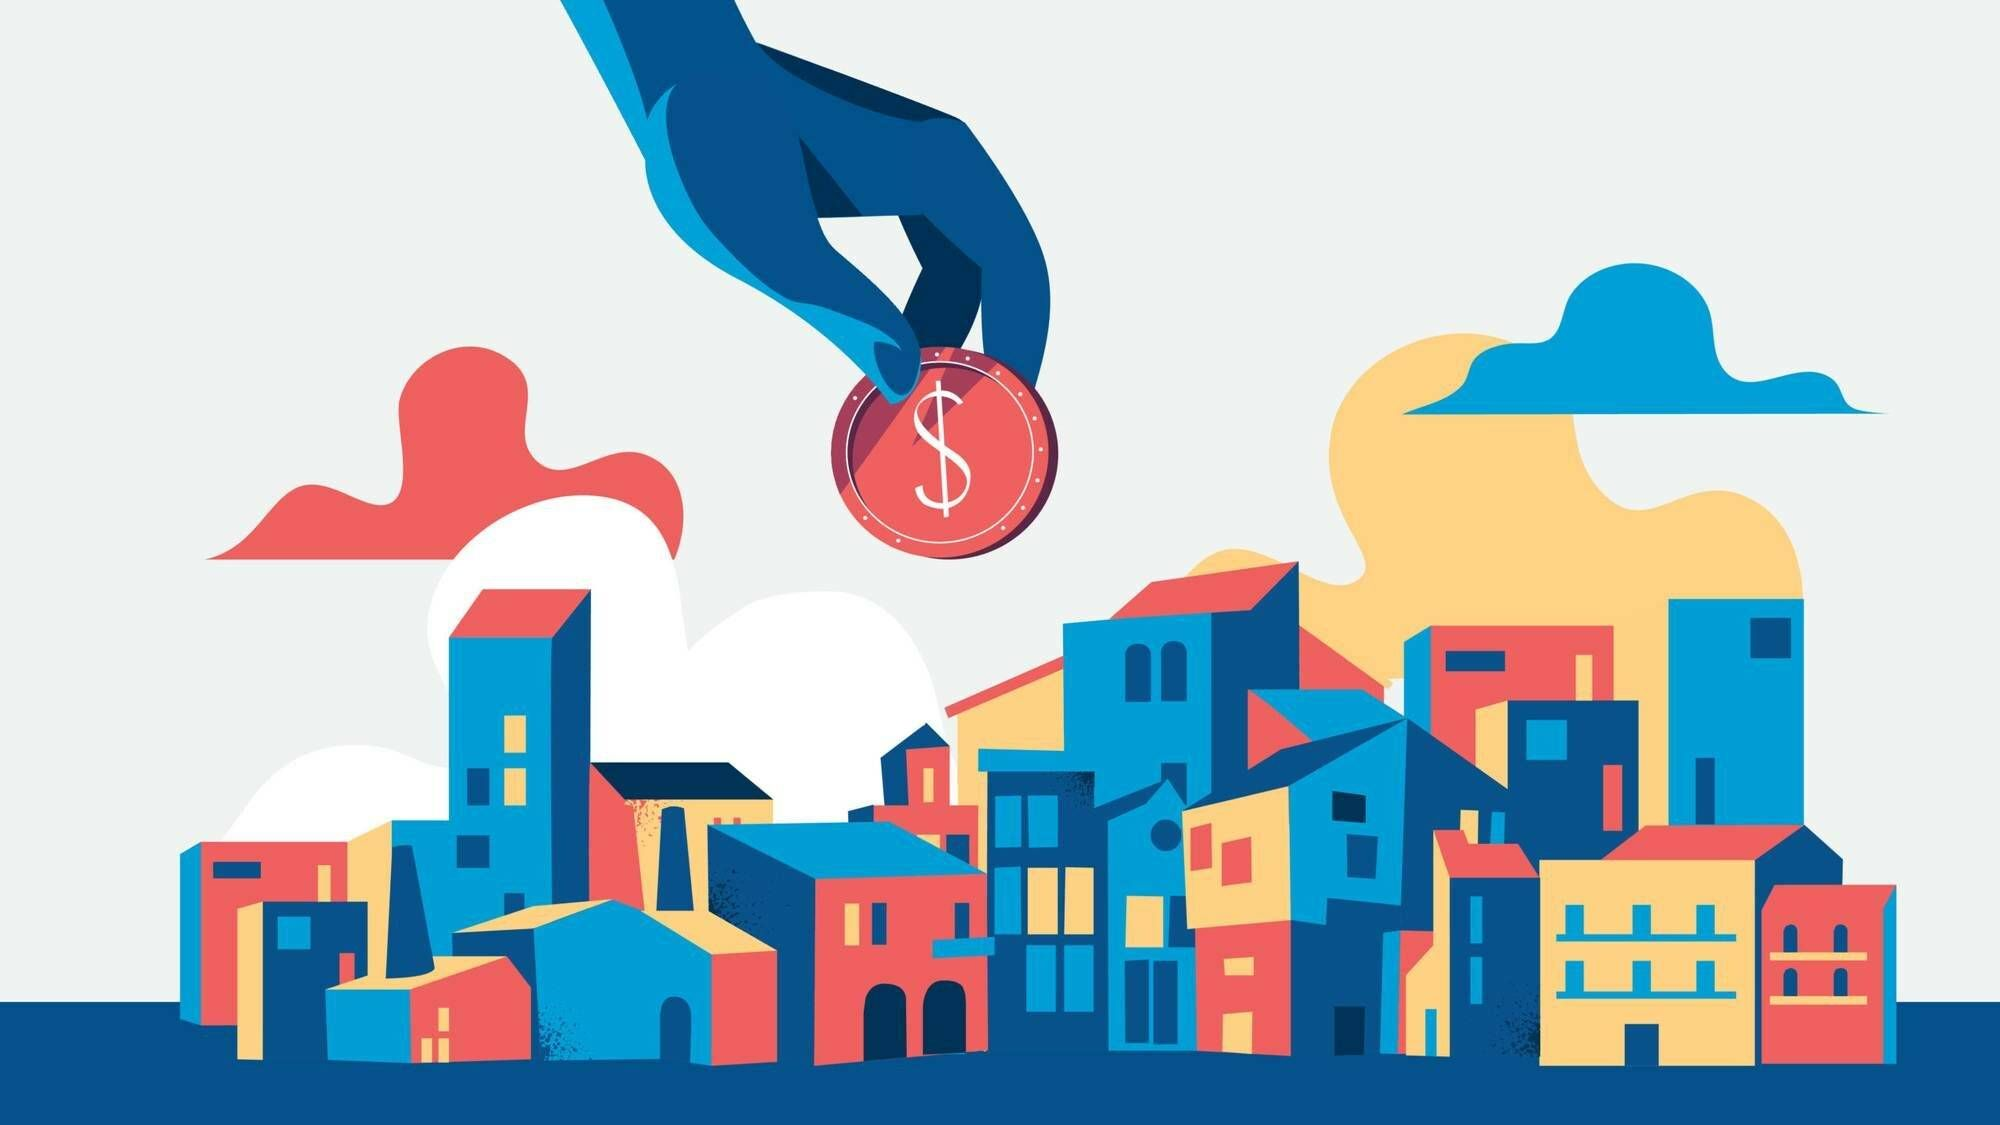 Illustration of hand reaching down from sky with a coin to deposit into a city. concept of investing in urban development. Rewire PBS Money Banking